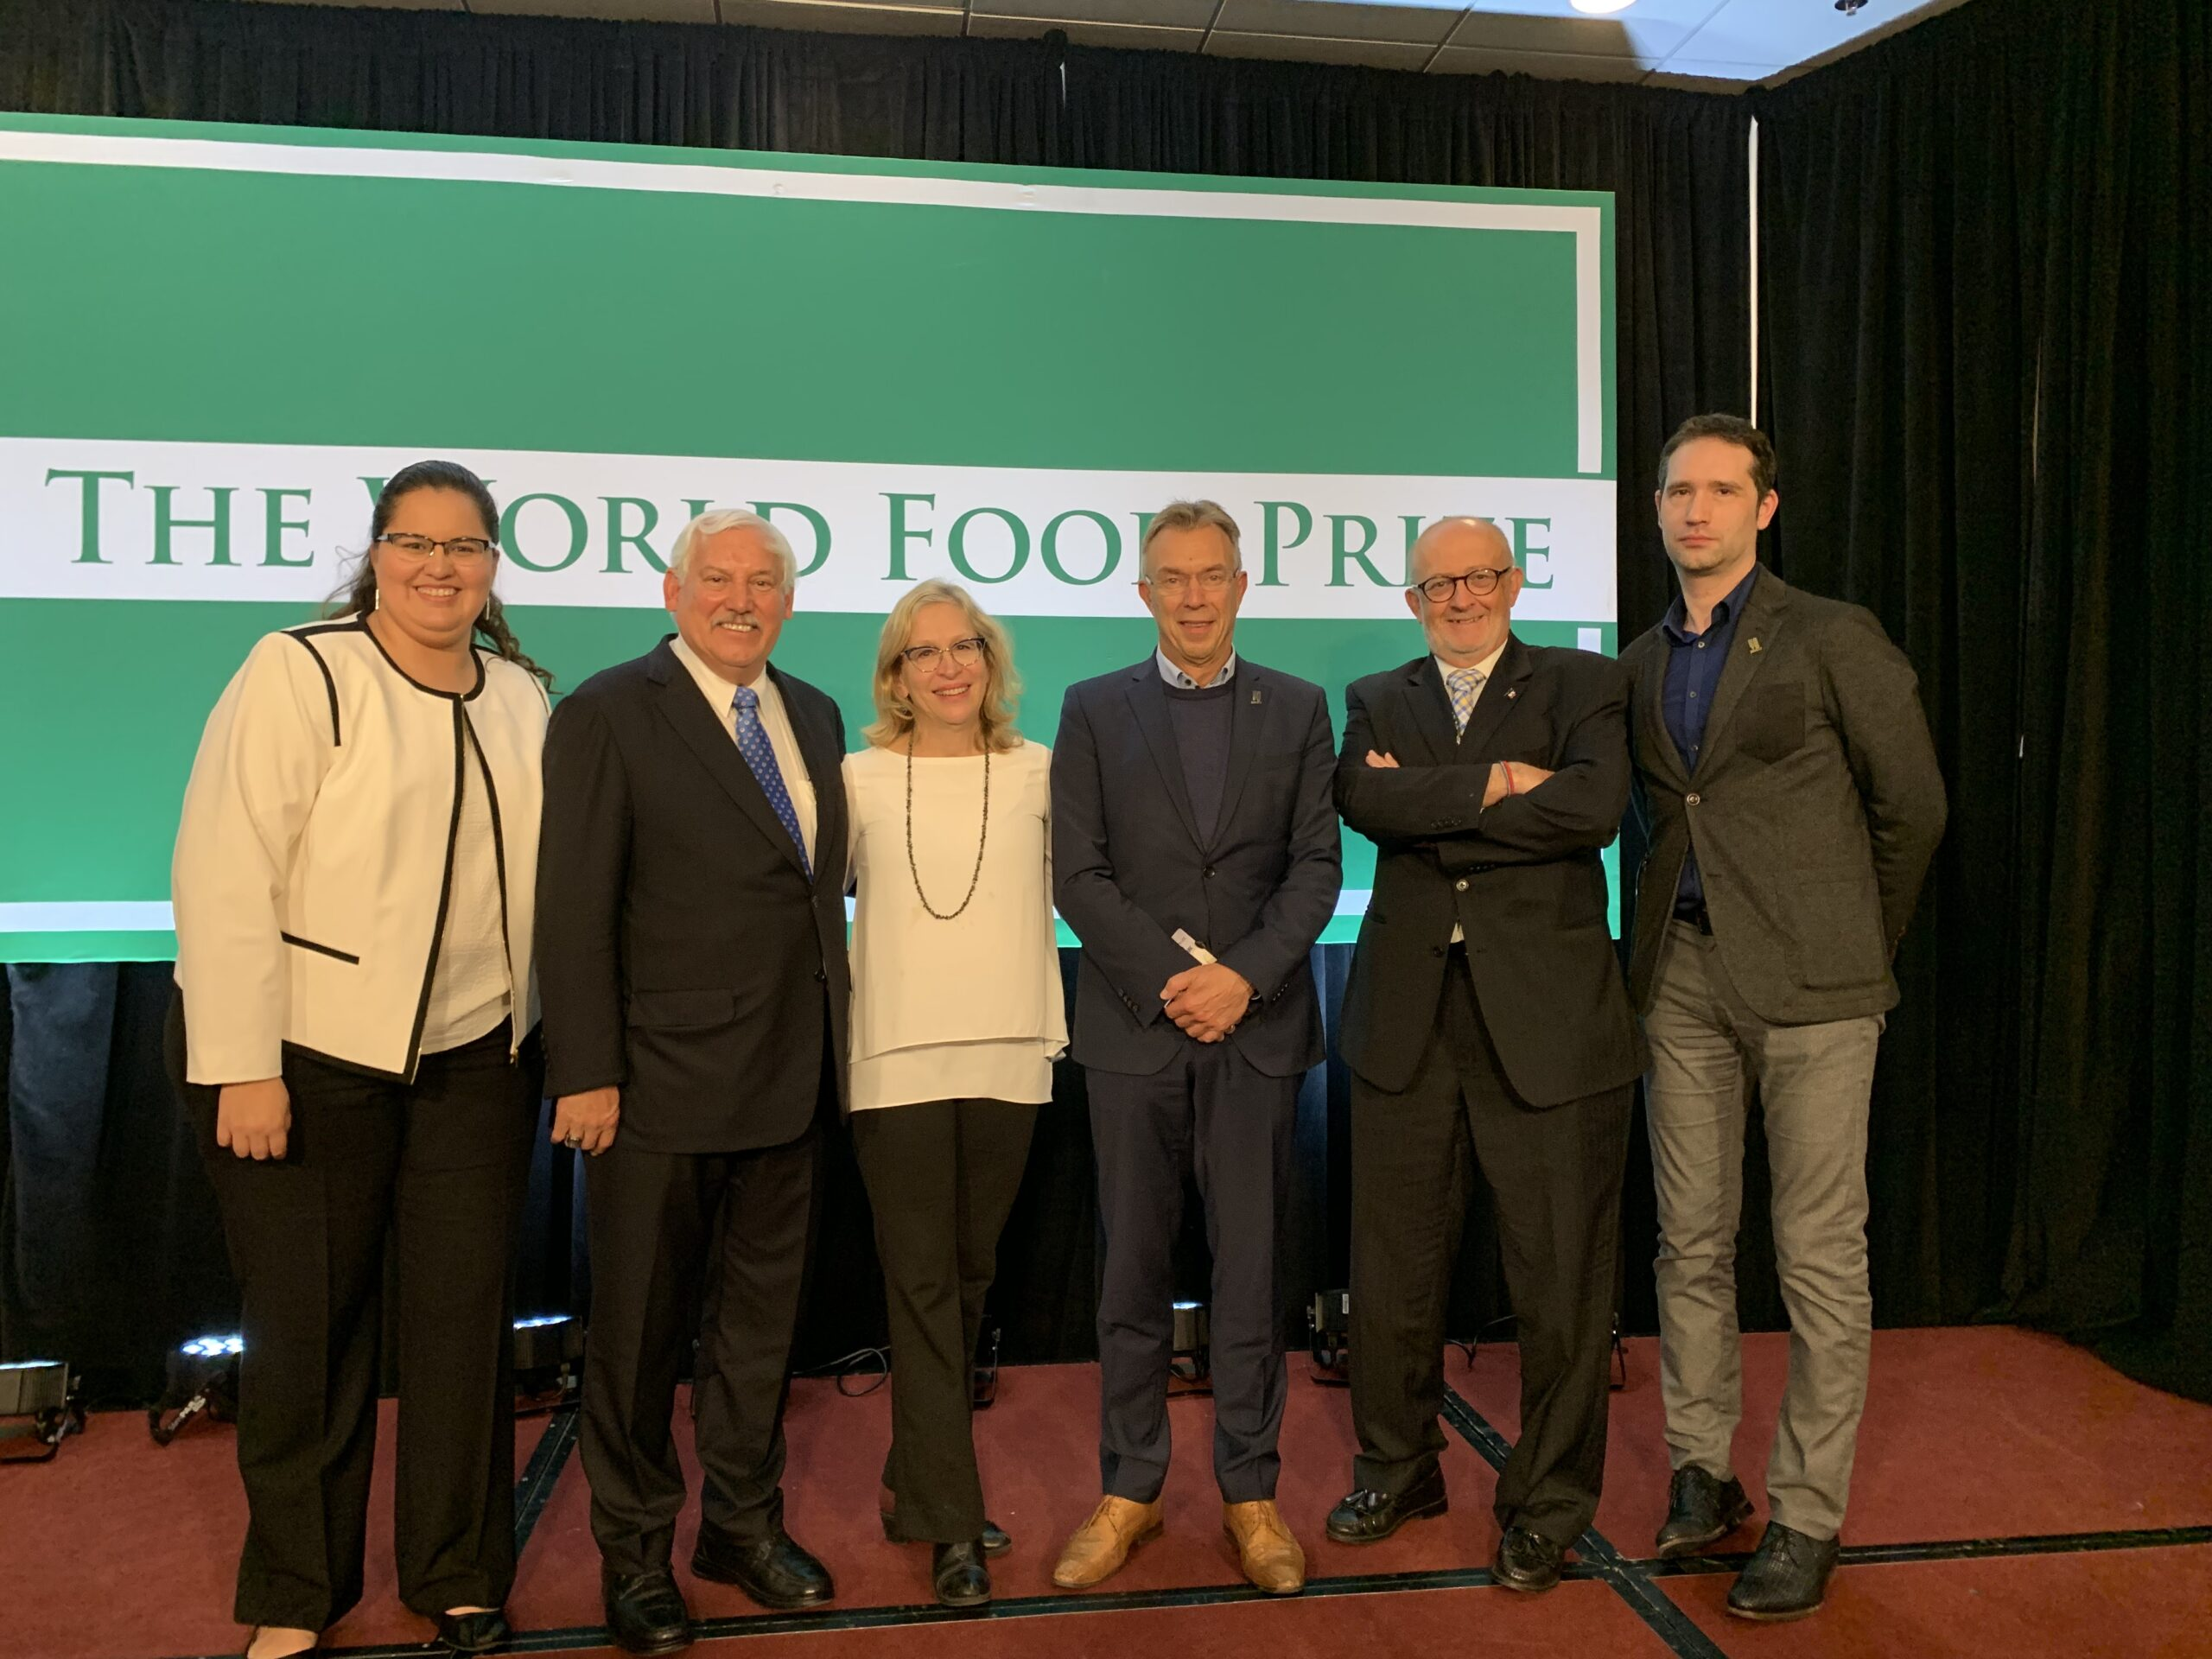 Molly Jahn at world food prize representing Jahn Research Group